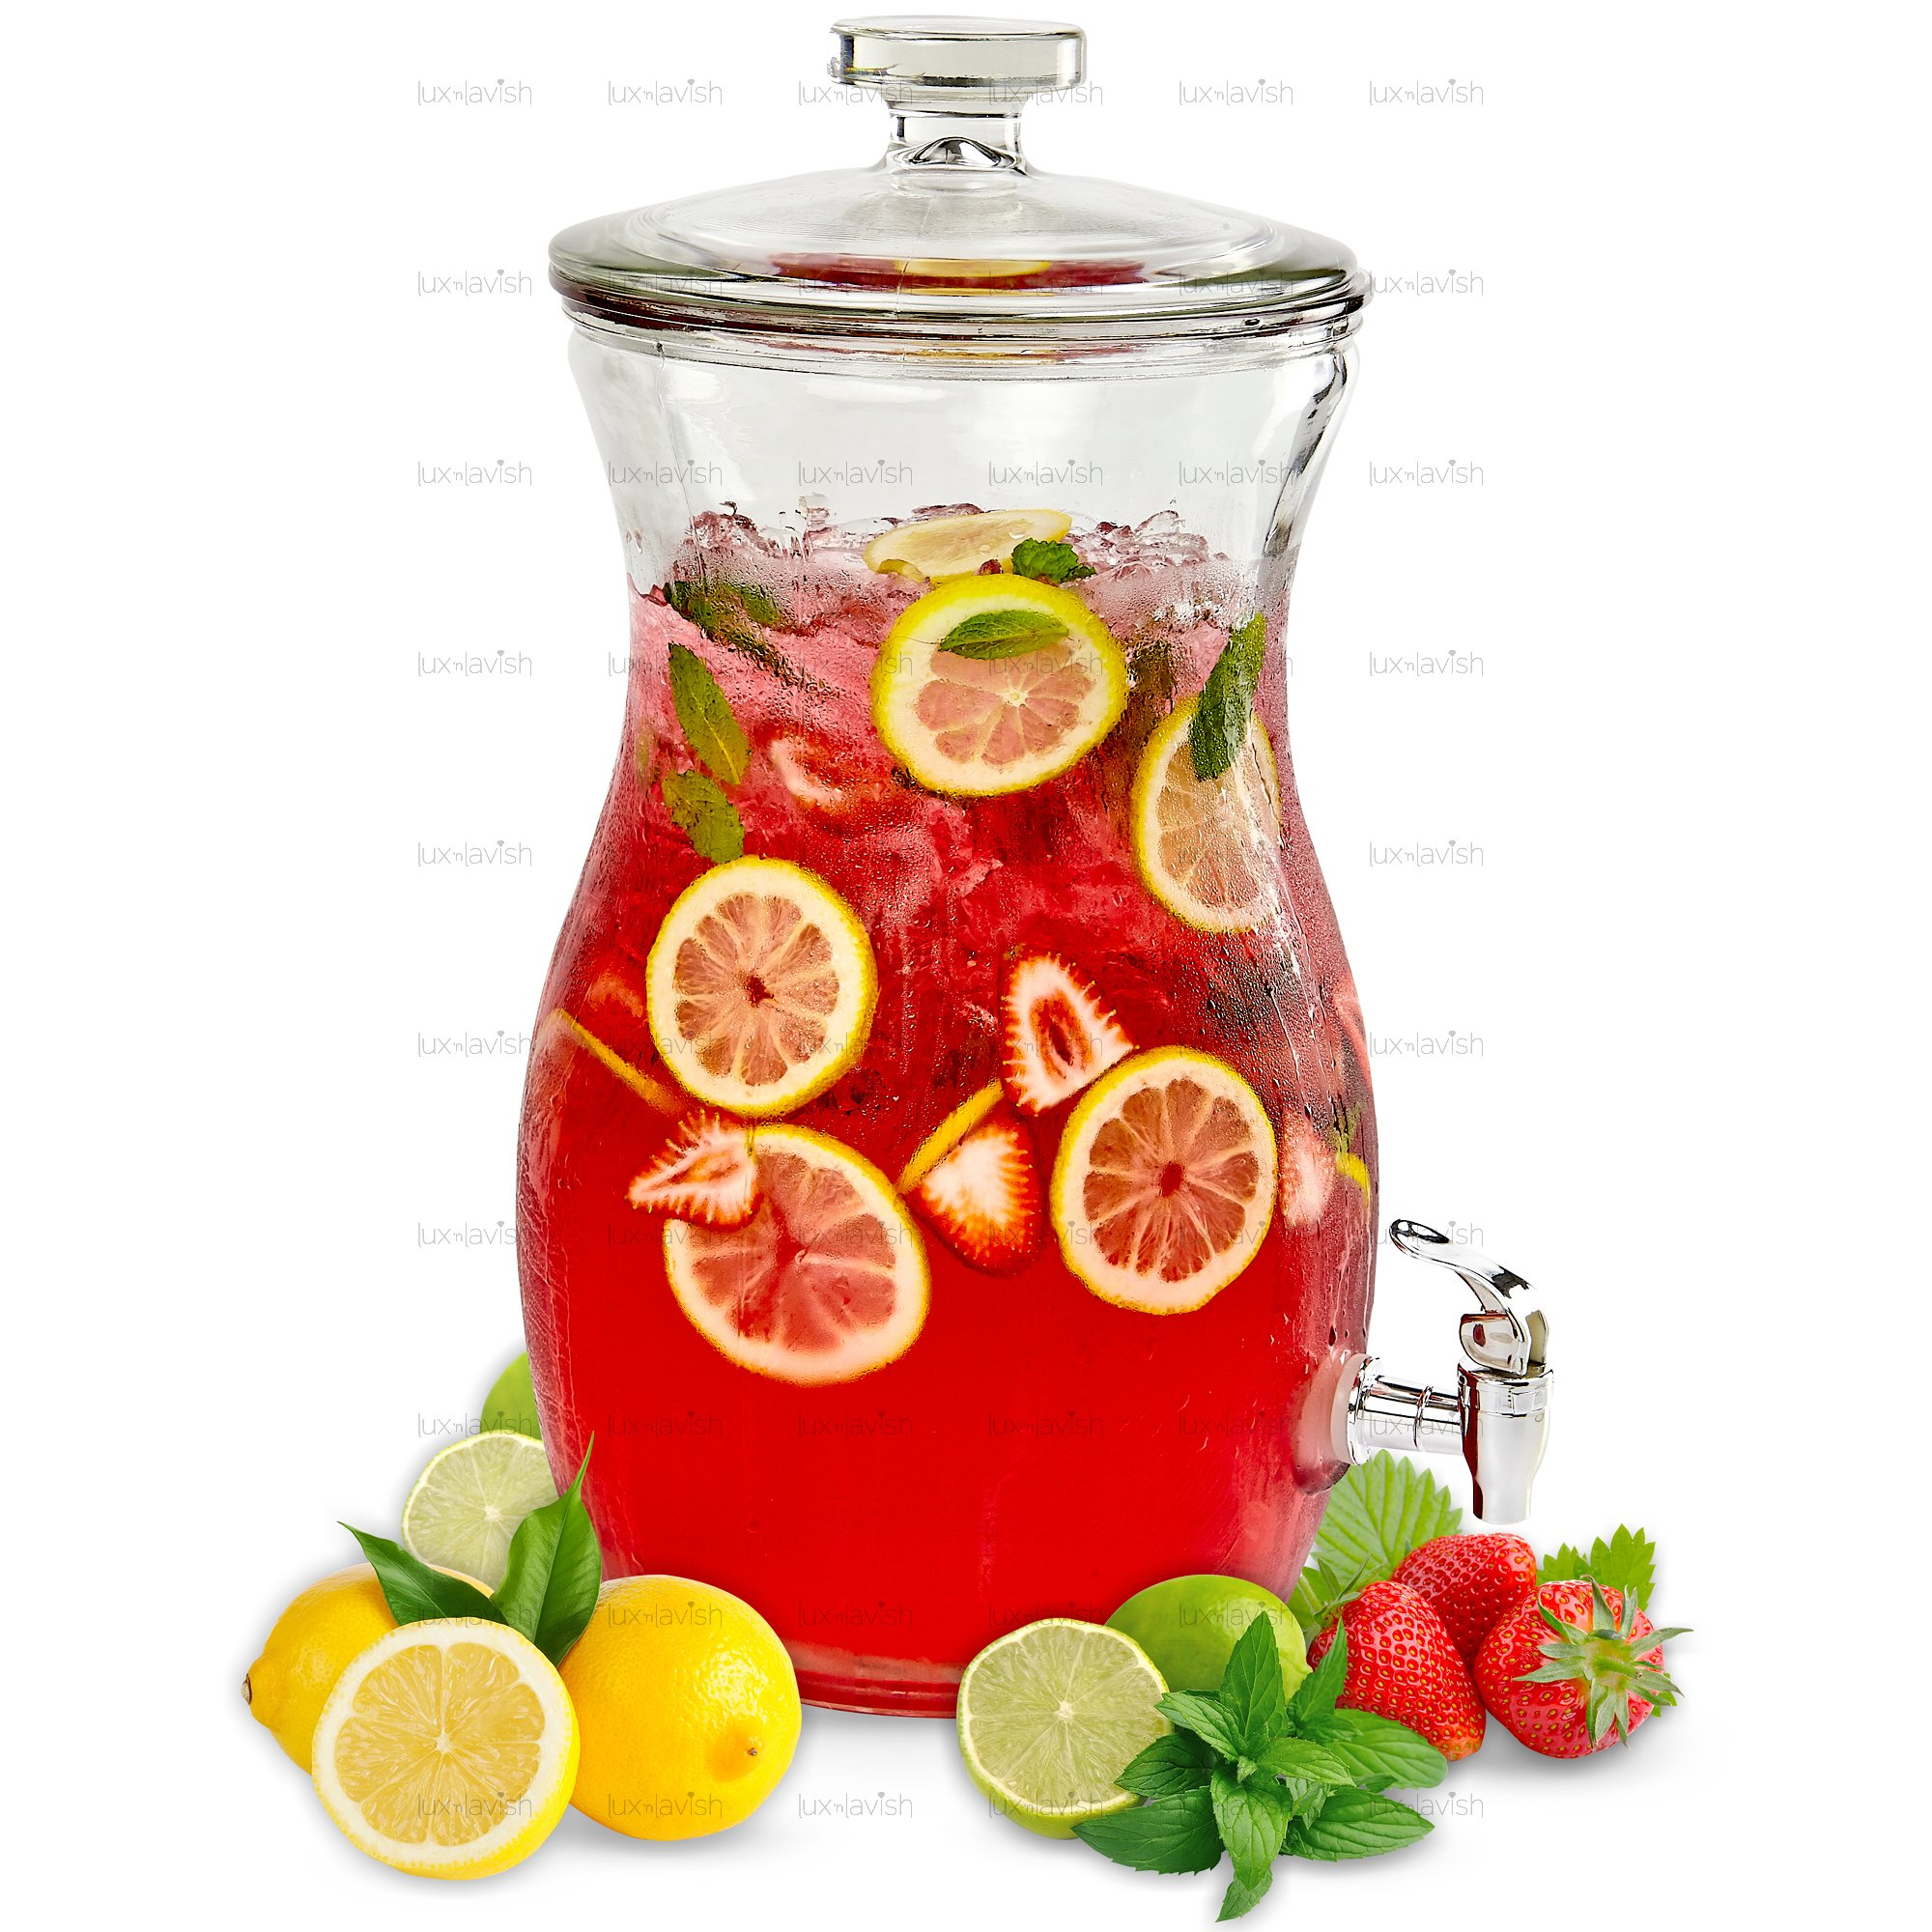 Lux 'n Lavish 2.6 Gallon Cold Beverage Dispenser - Spigot and Lid – Elegant Glass Party Buffet Centerpiece for Iced Tea, Lemonade, Fruit Punch, Cocktails and All Drinks